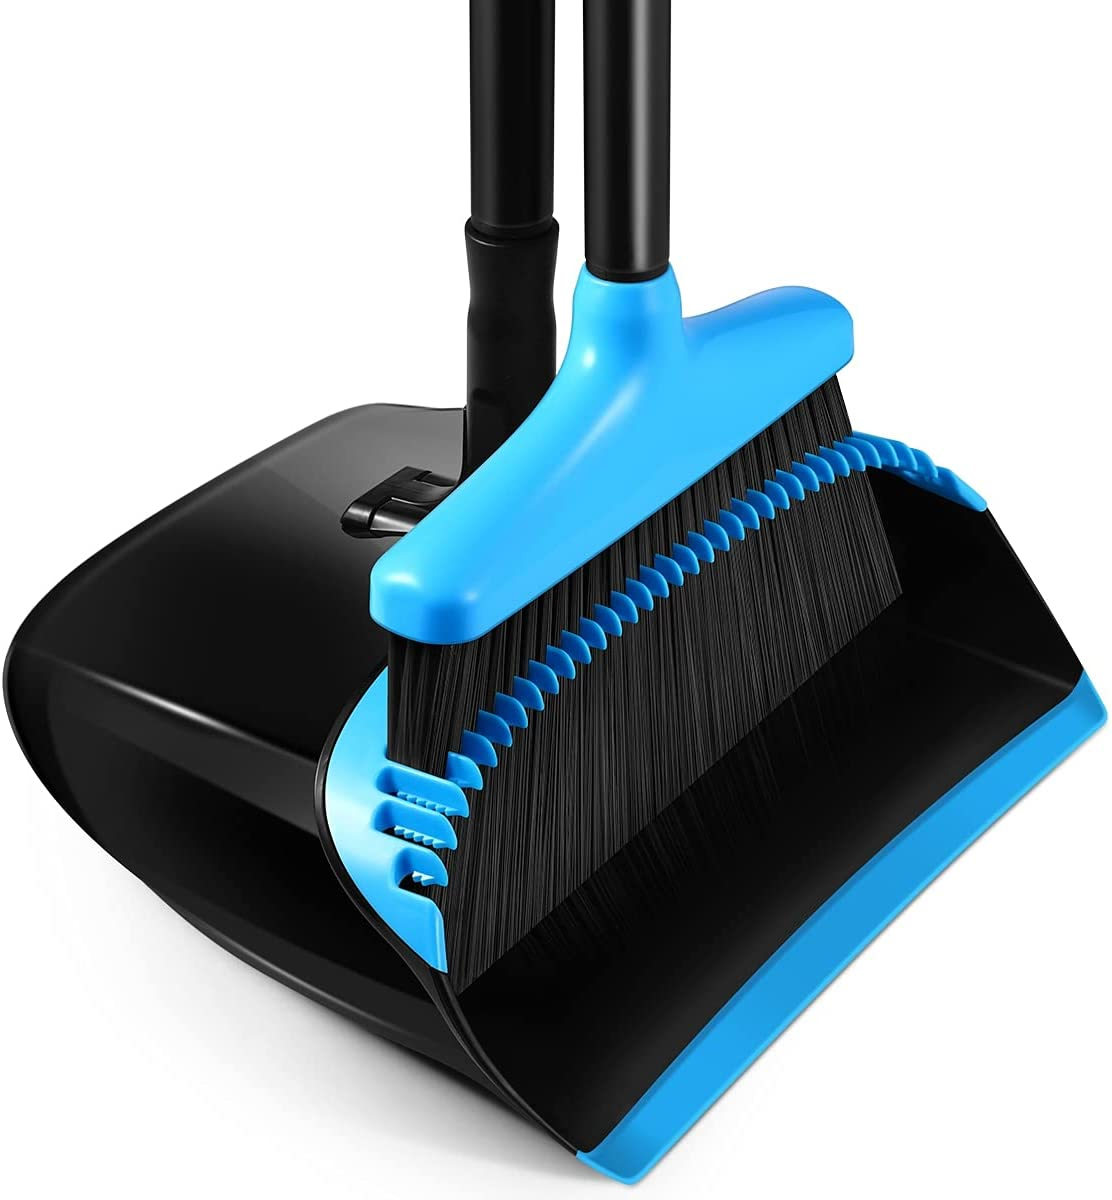 Broom and Dustpan Set Free shipping anywhere in the nation for Long Boston Mall Home - with Han